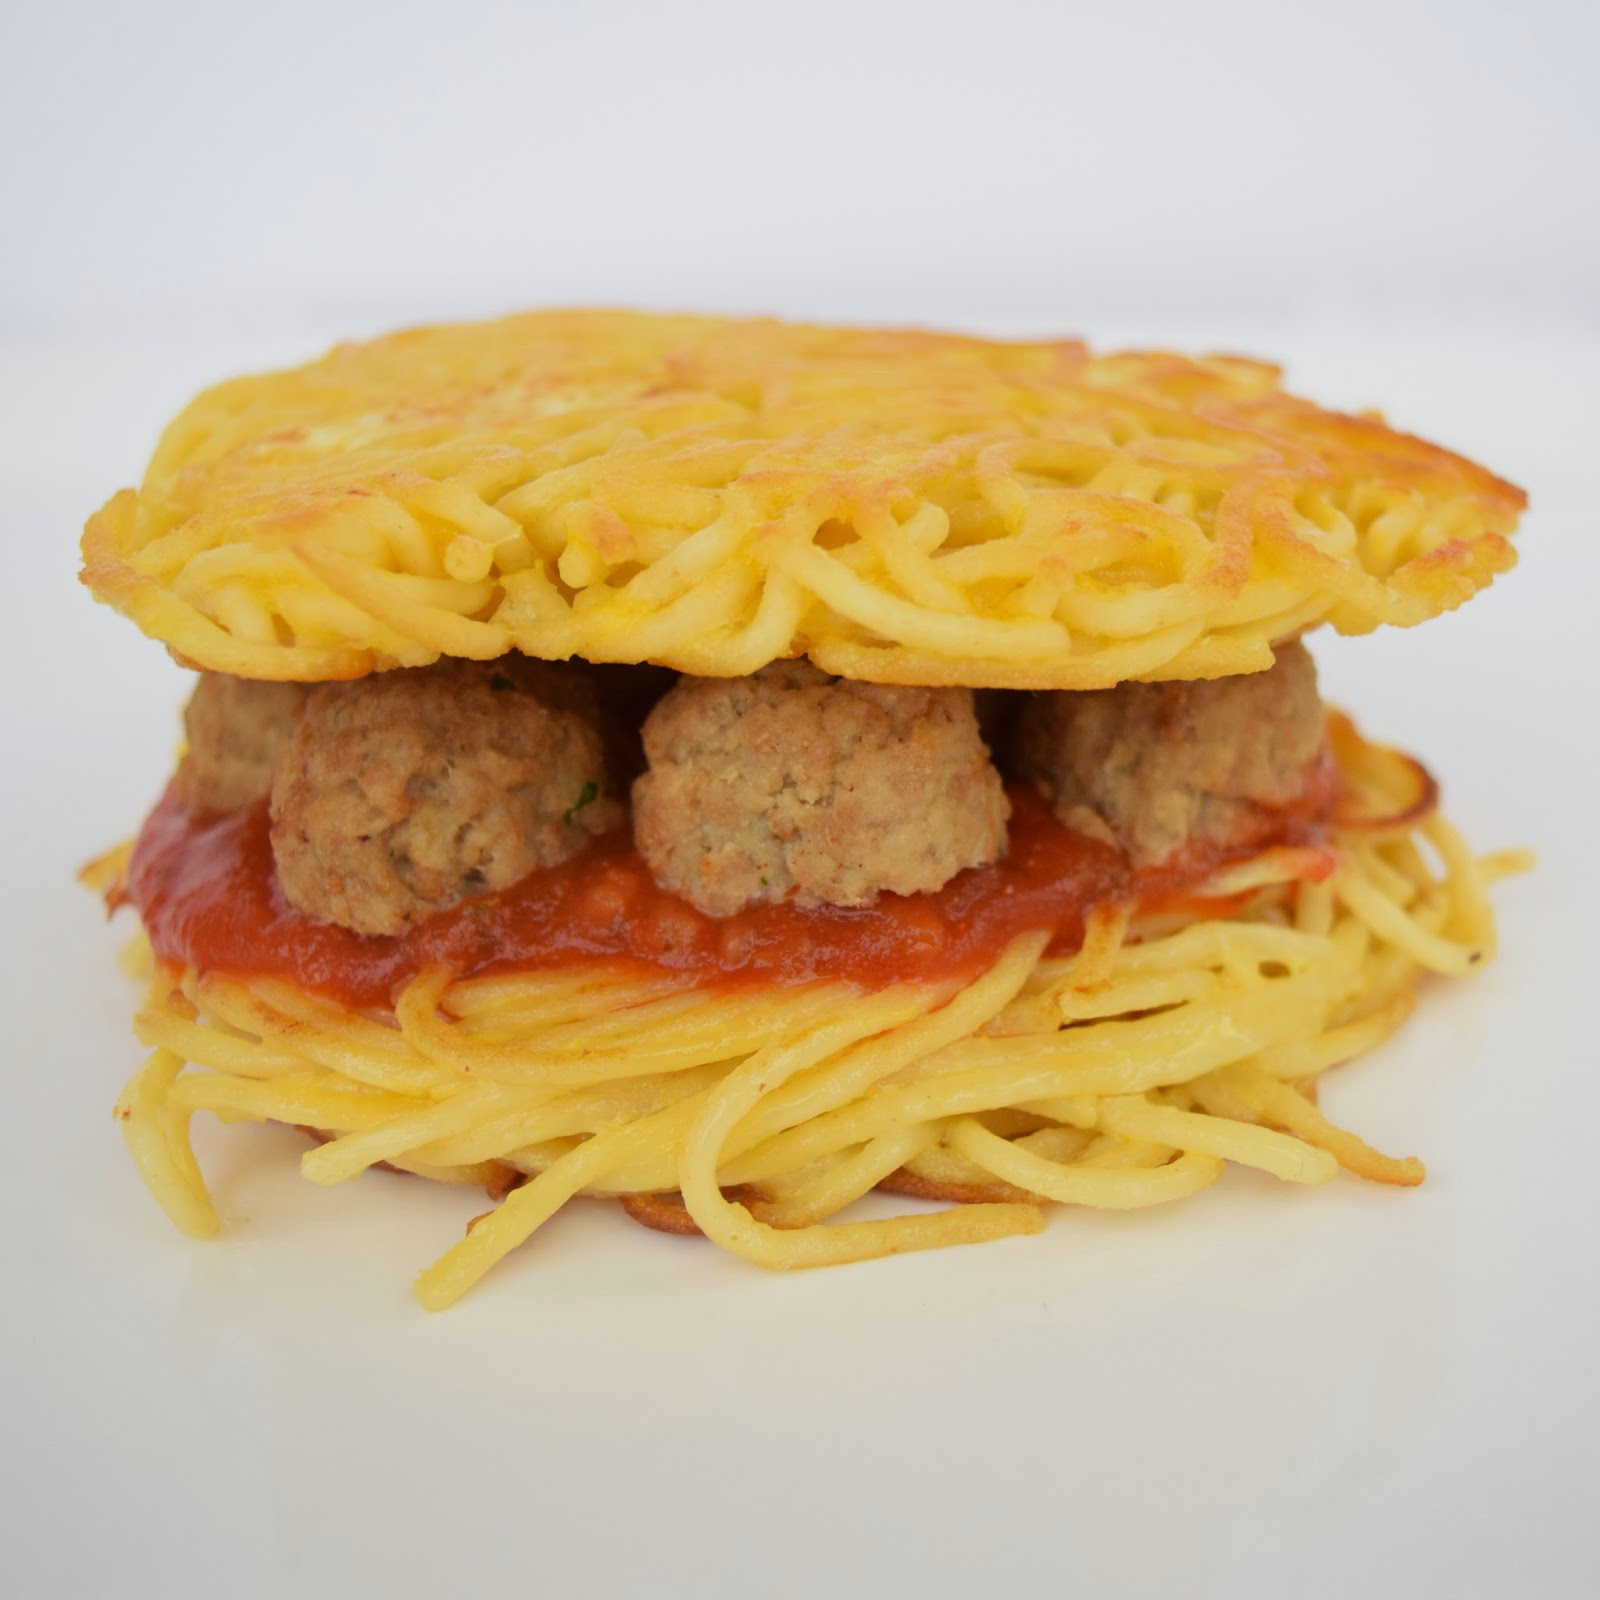 spaghetti and meatball burger recipe